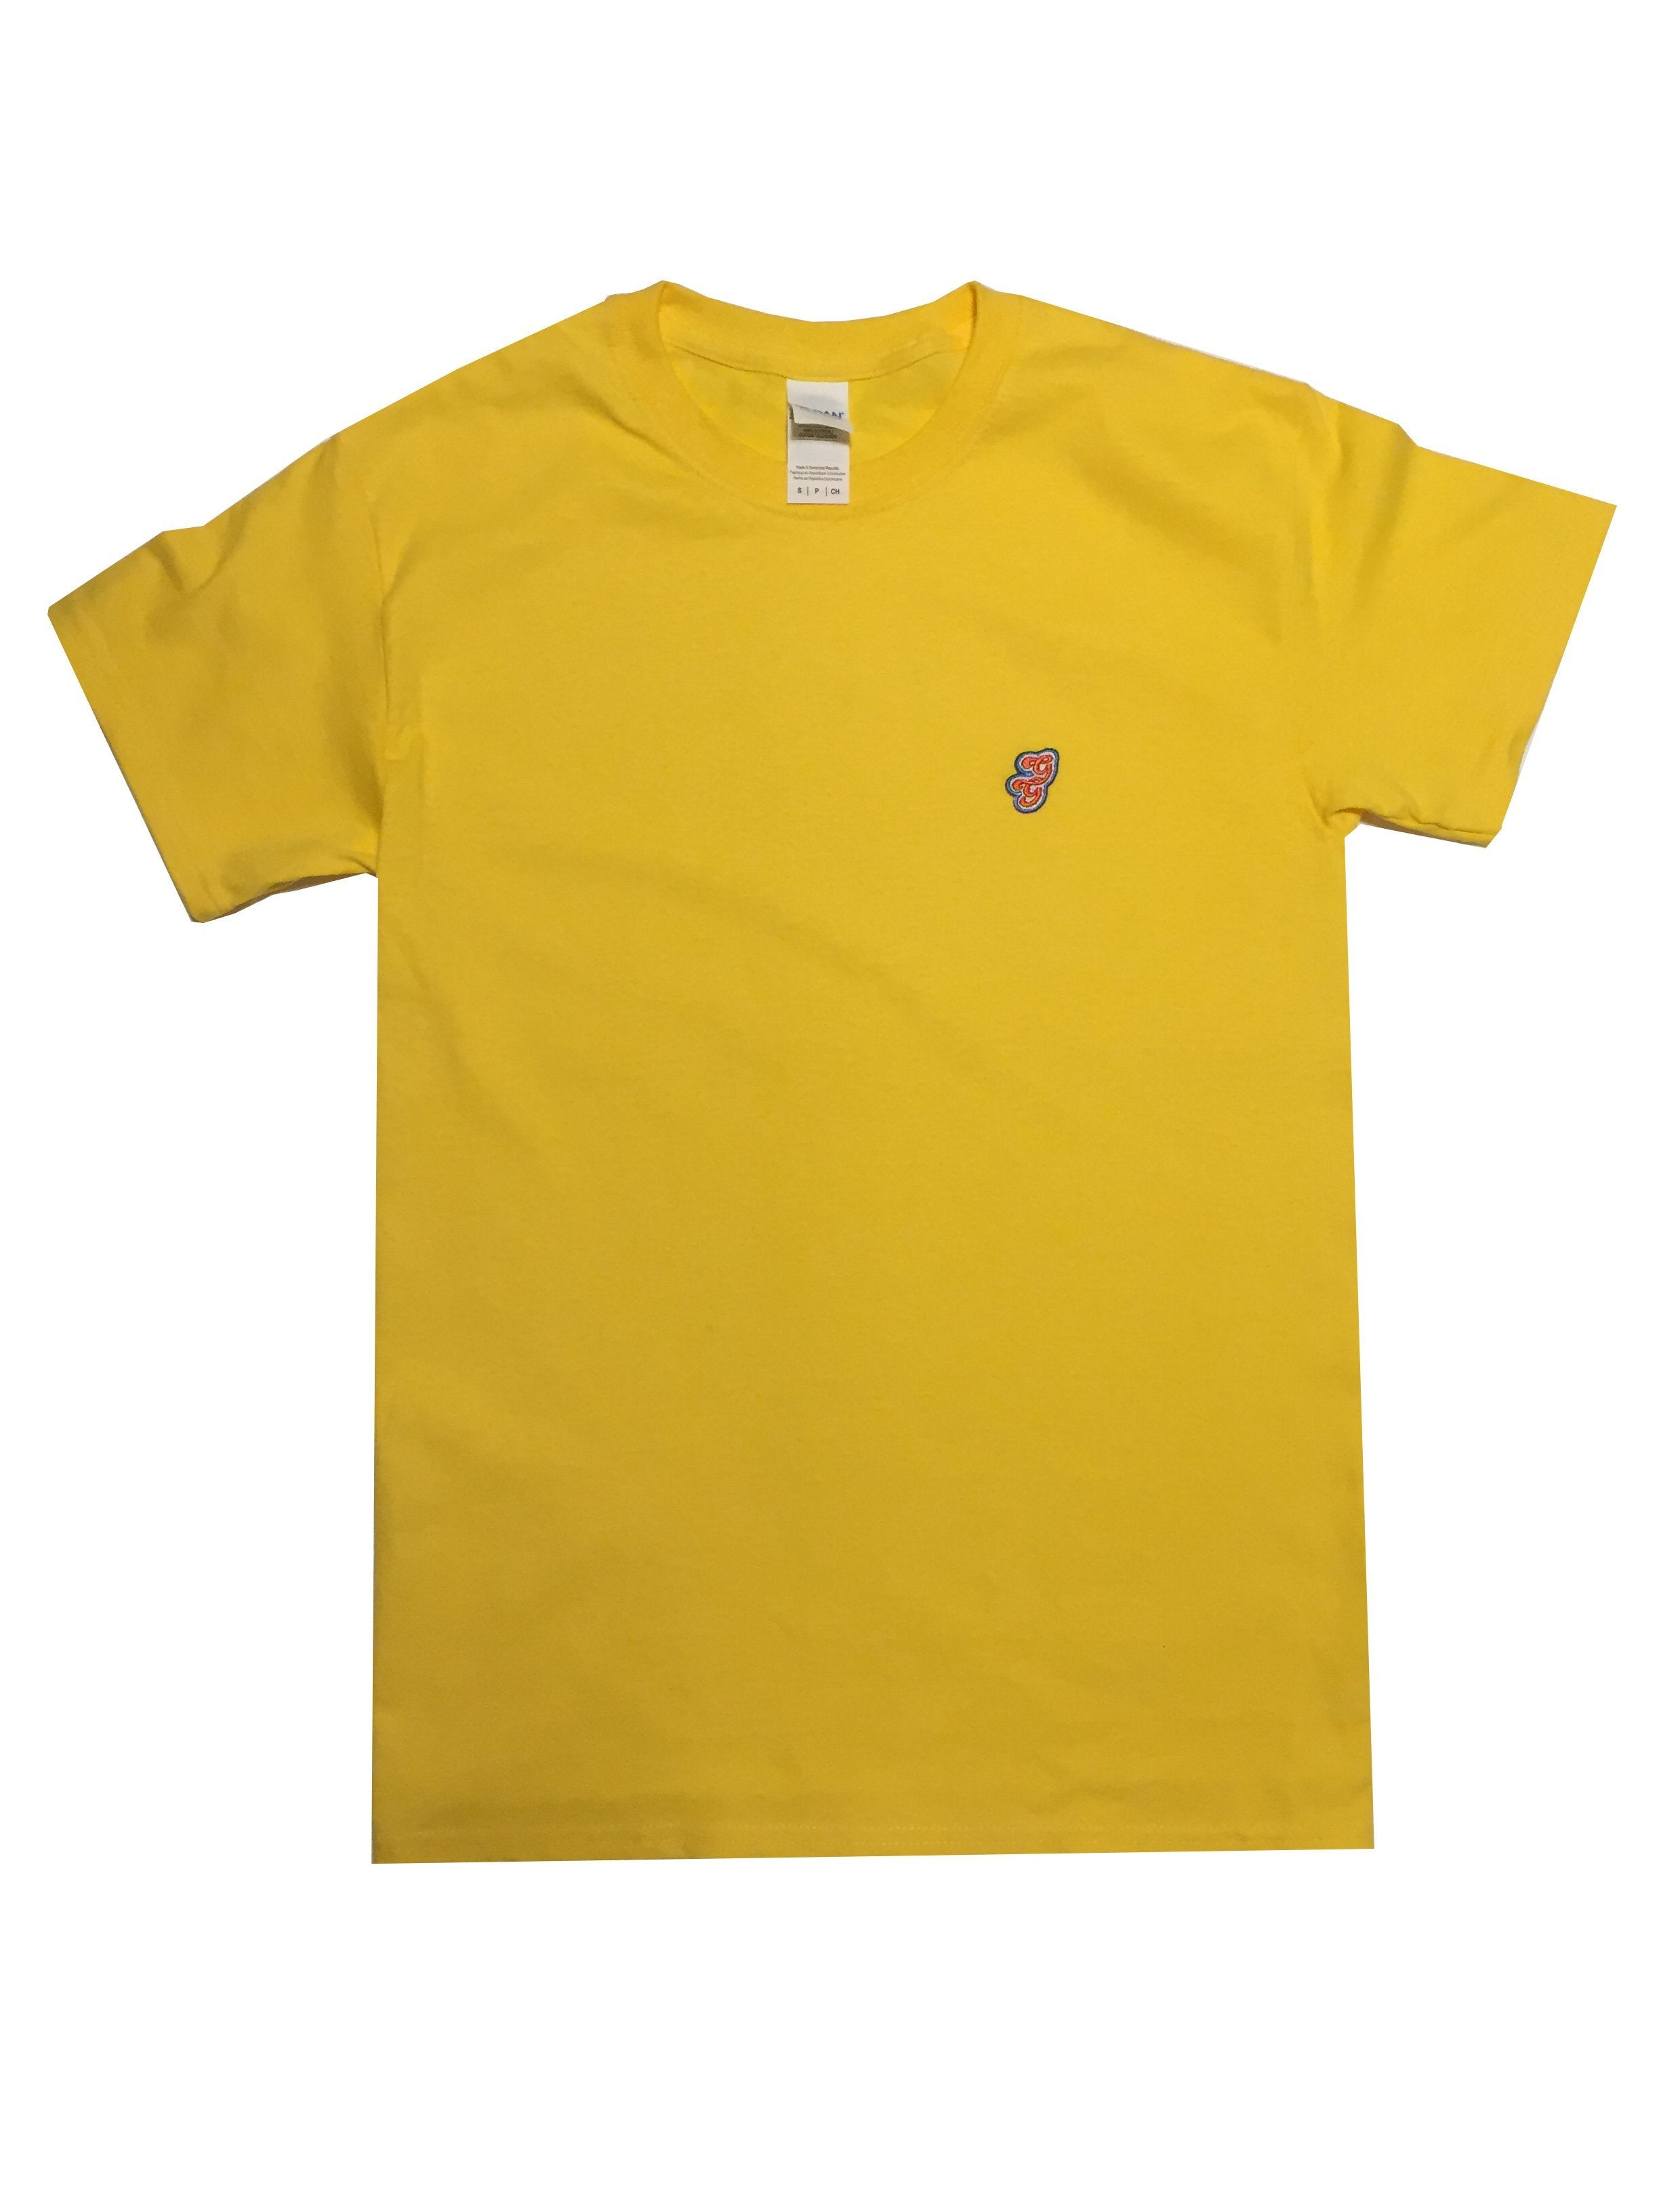 GG Yellow T-Shirt with Initials For Women